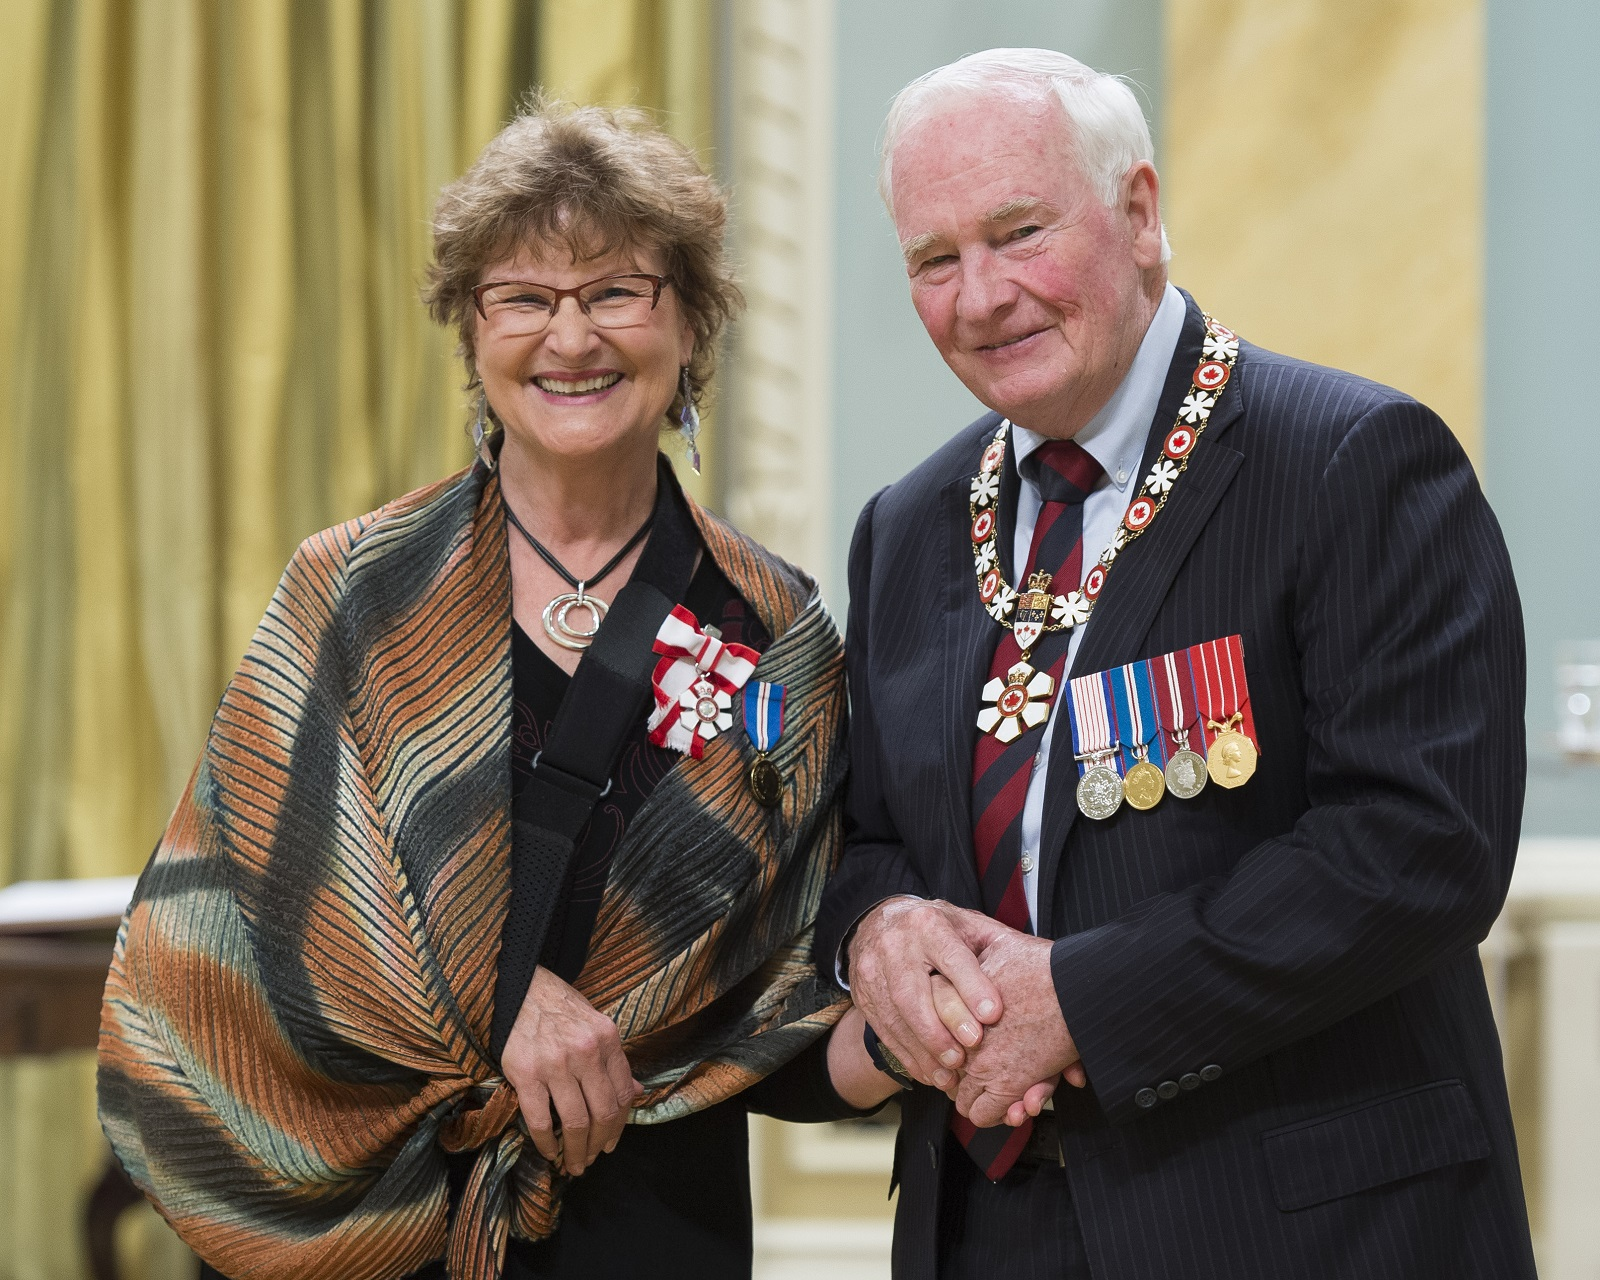 GG02-2017-0299-032 August 25, 2017 Ottawa, Ontario, Canada The Governor General presents the Member insignia of the Order of Canada to CharlotteDiamond, C.M. His Excellency the Right Honourable David Johnston, Governor General of Canada, invested1 Companion,13 Officers and 30 Membersinto the Order of Canada during a ceremony at Rideau Hall, onFriday, August 25,2017. Credit: MCpl Vincent Carbonneau, Rideau Hall, OSGG